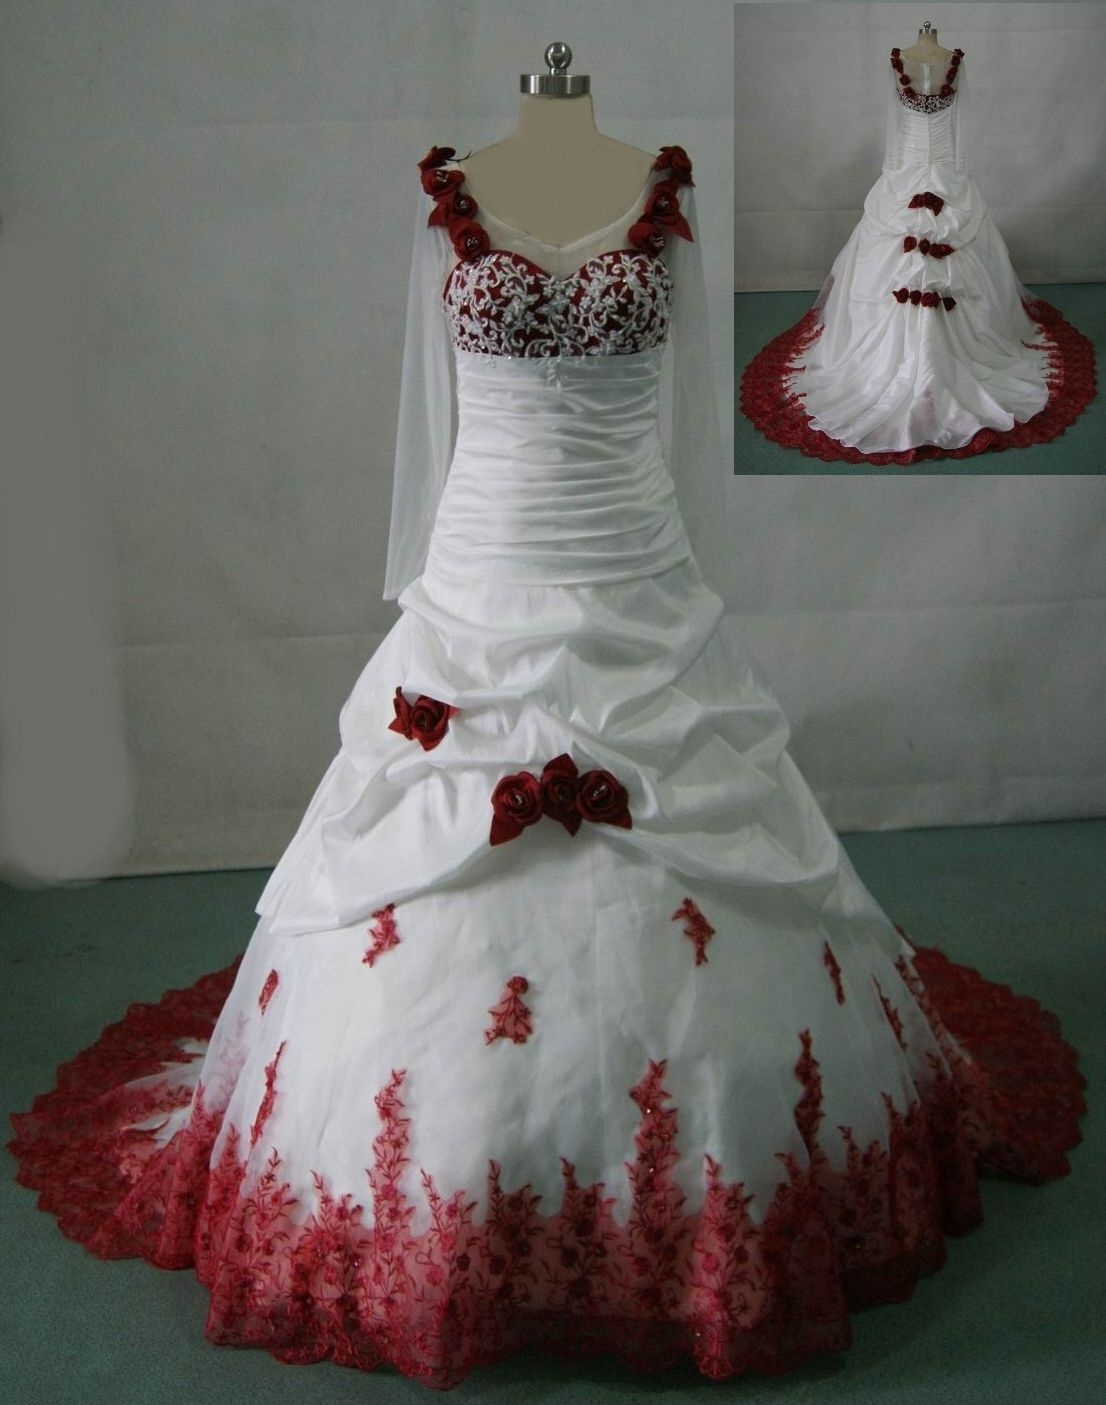 Wedding Dresses With Red Accents Red Wedding Dresses Wedding Dresses Wedding Gowns [ 1405 x 1106 Pixel ]